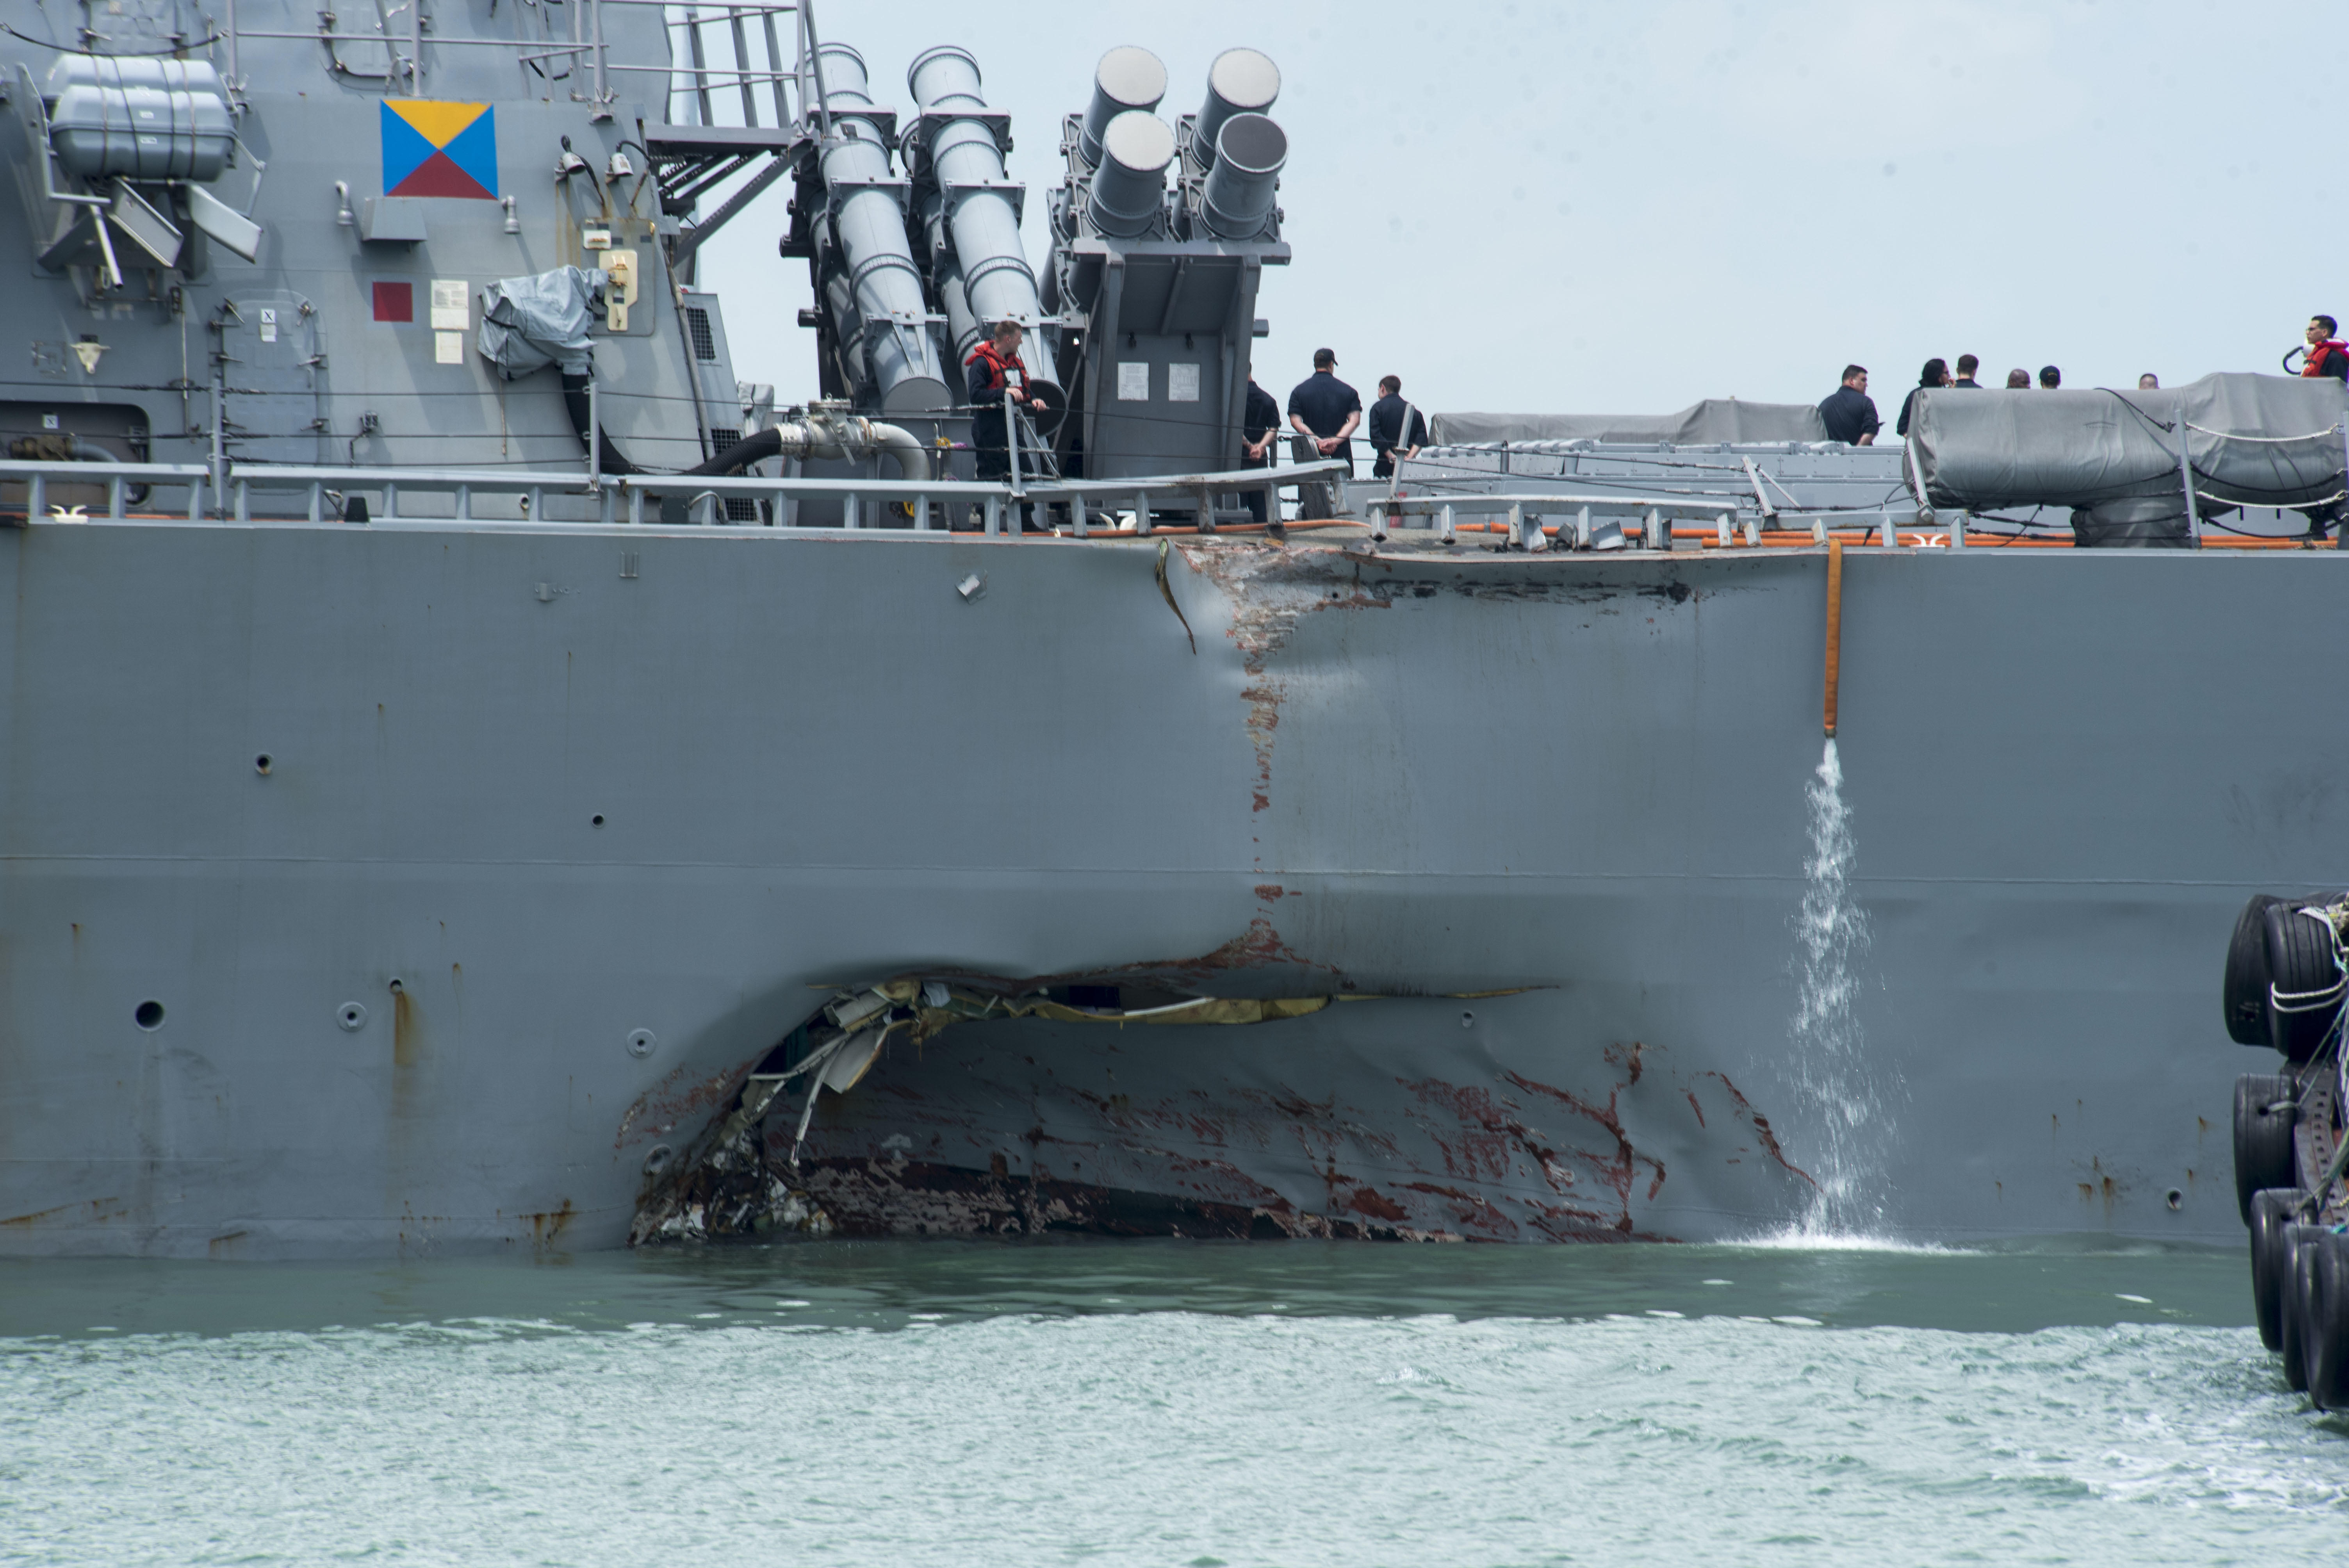 Commander of Naval Fleet Relieved of Duty After Collisions